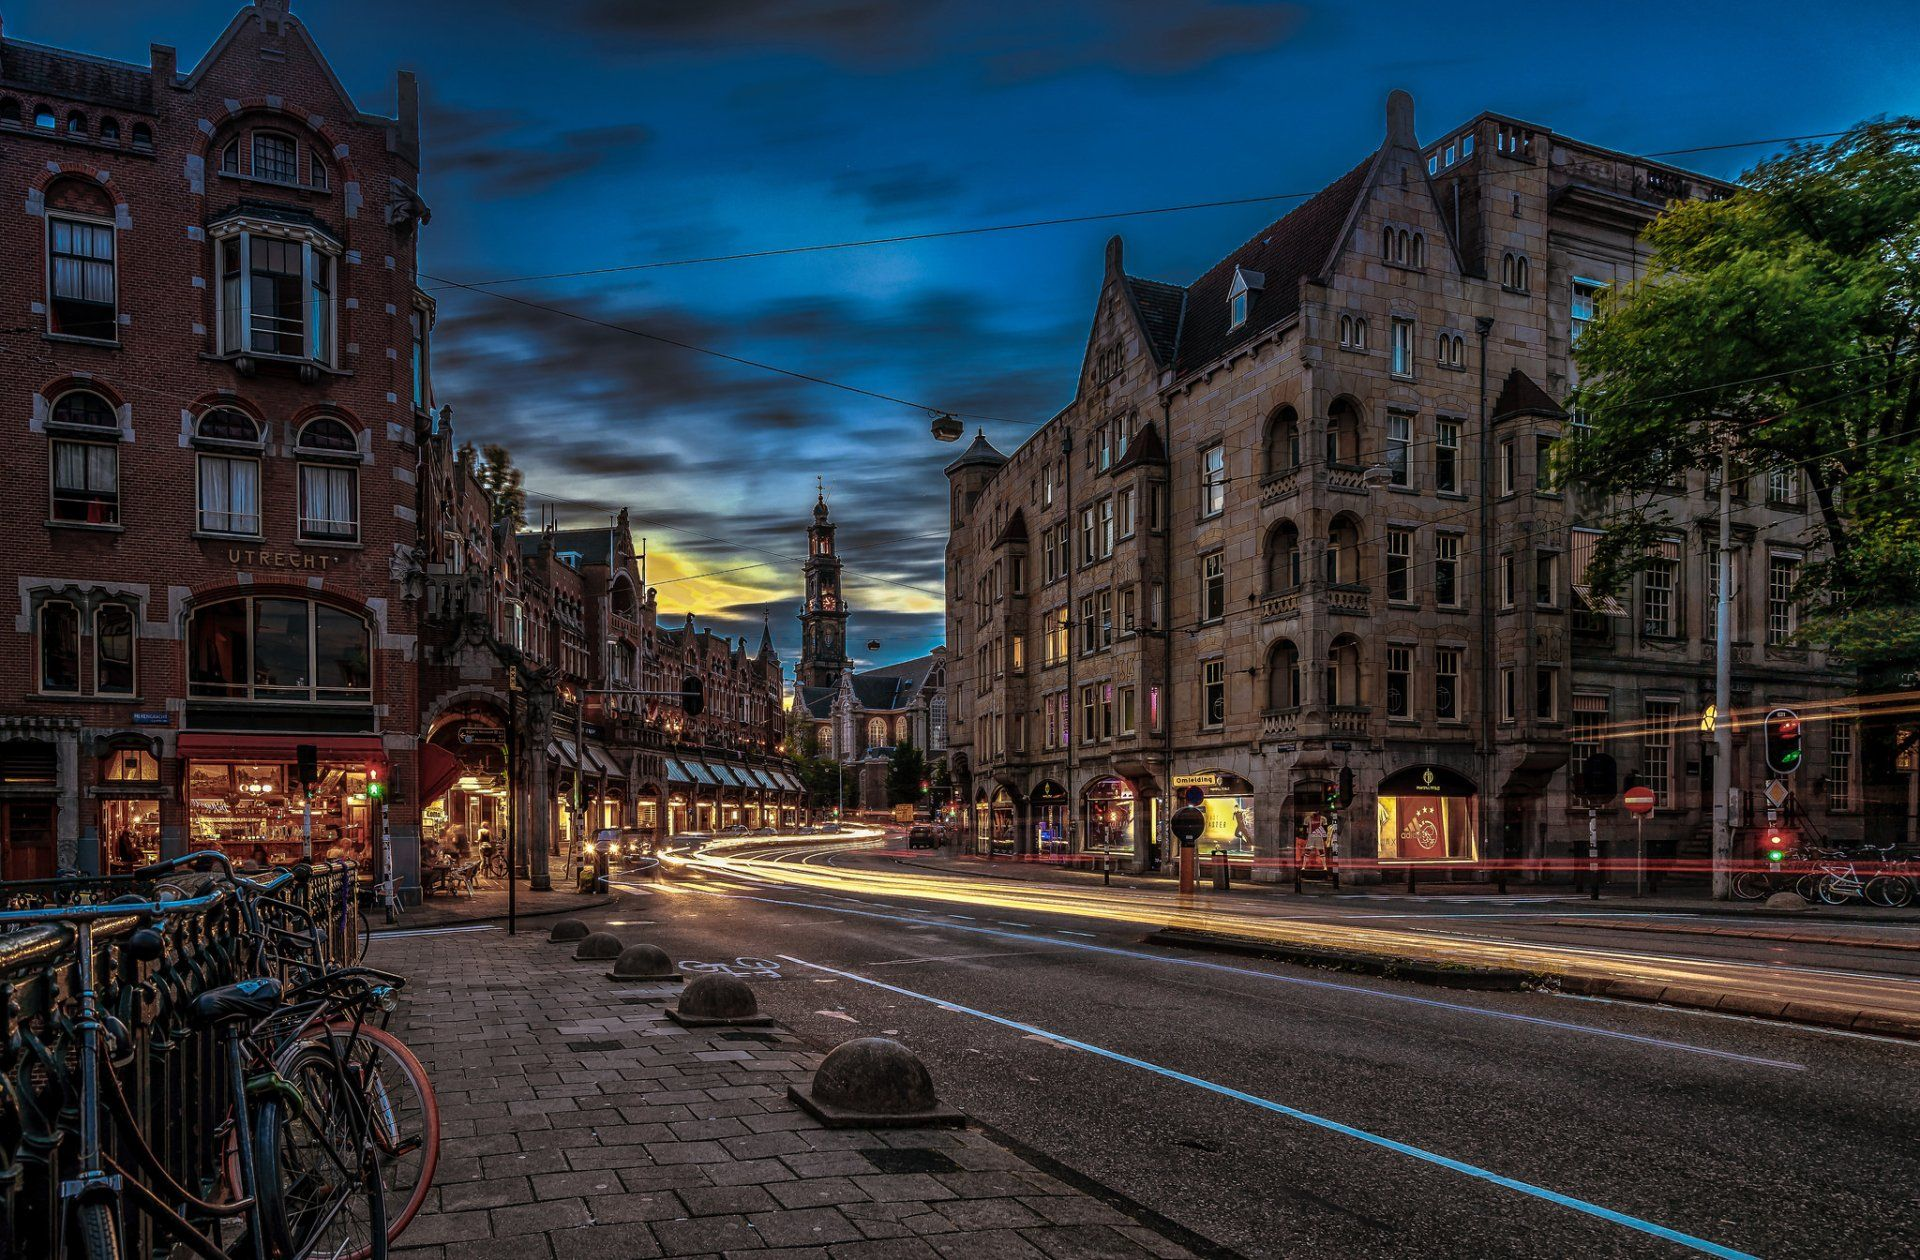 Man Made Amsterdam Netherlands Night City Road Building Time Lapse Wallpaper